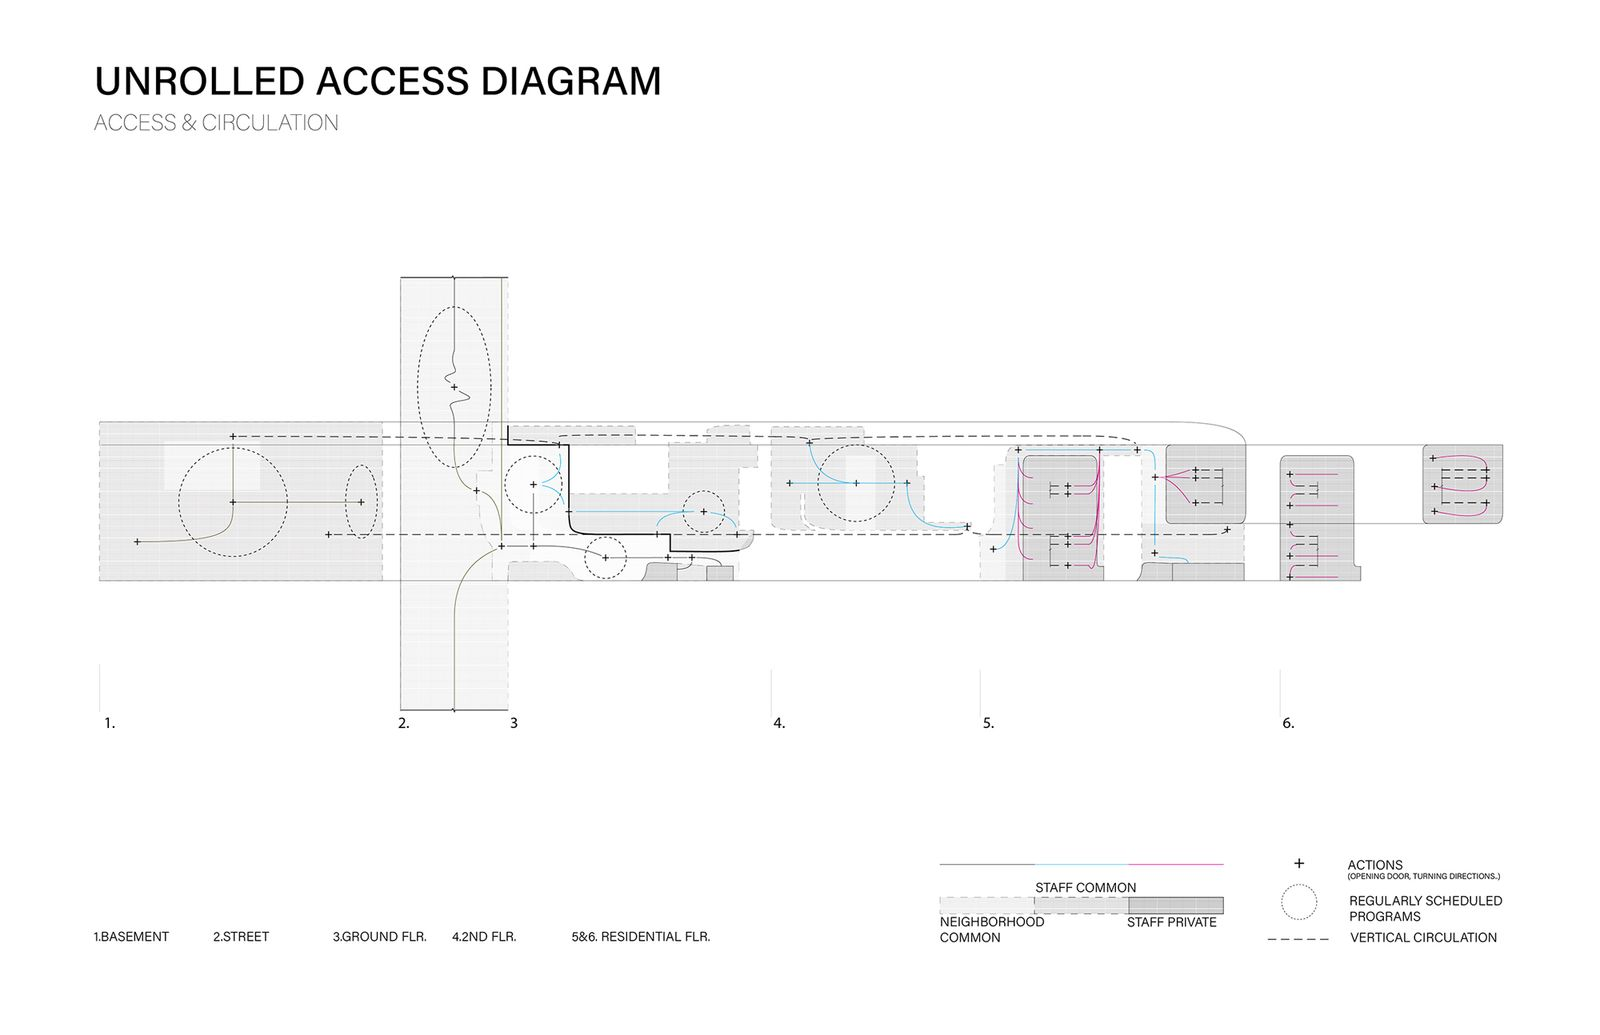 Unrolled Access Diagram